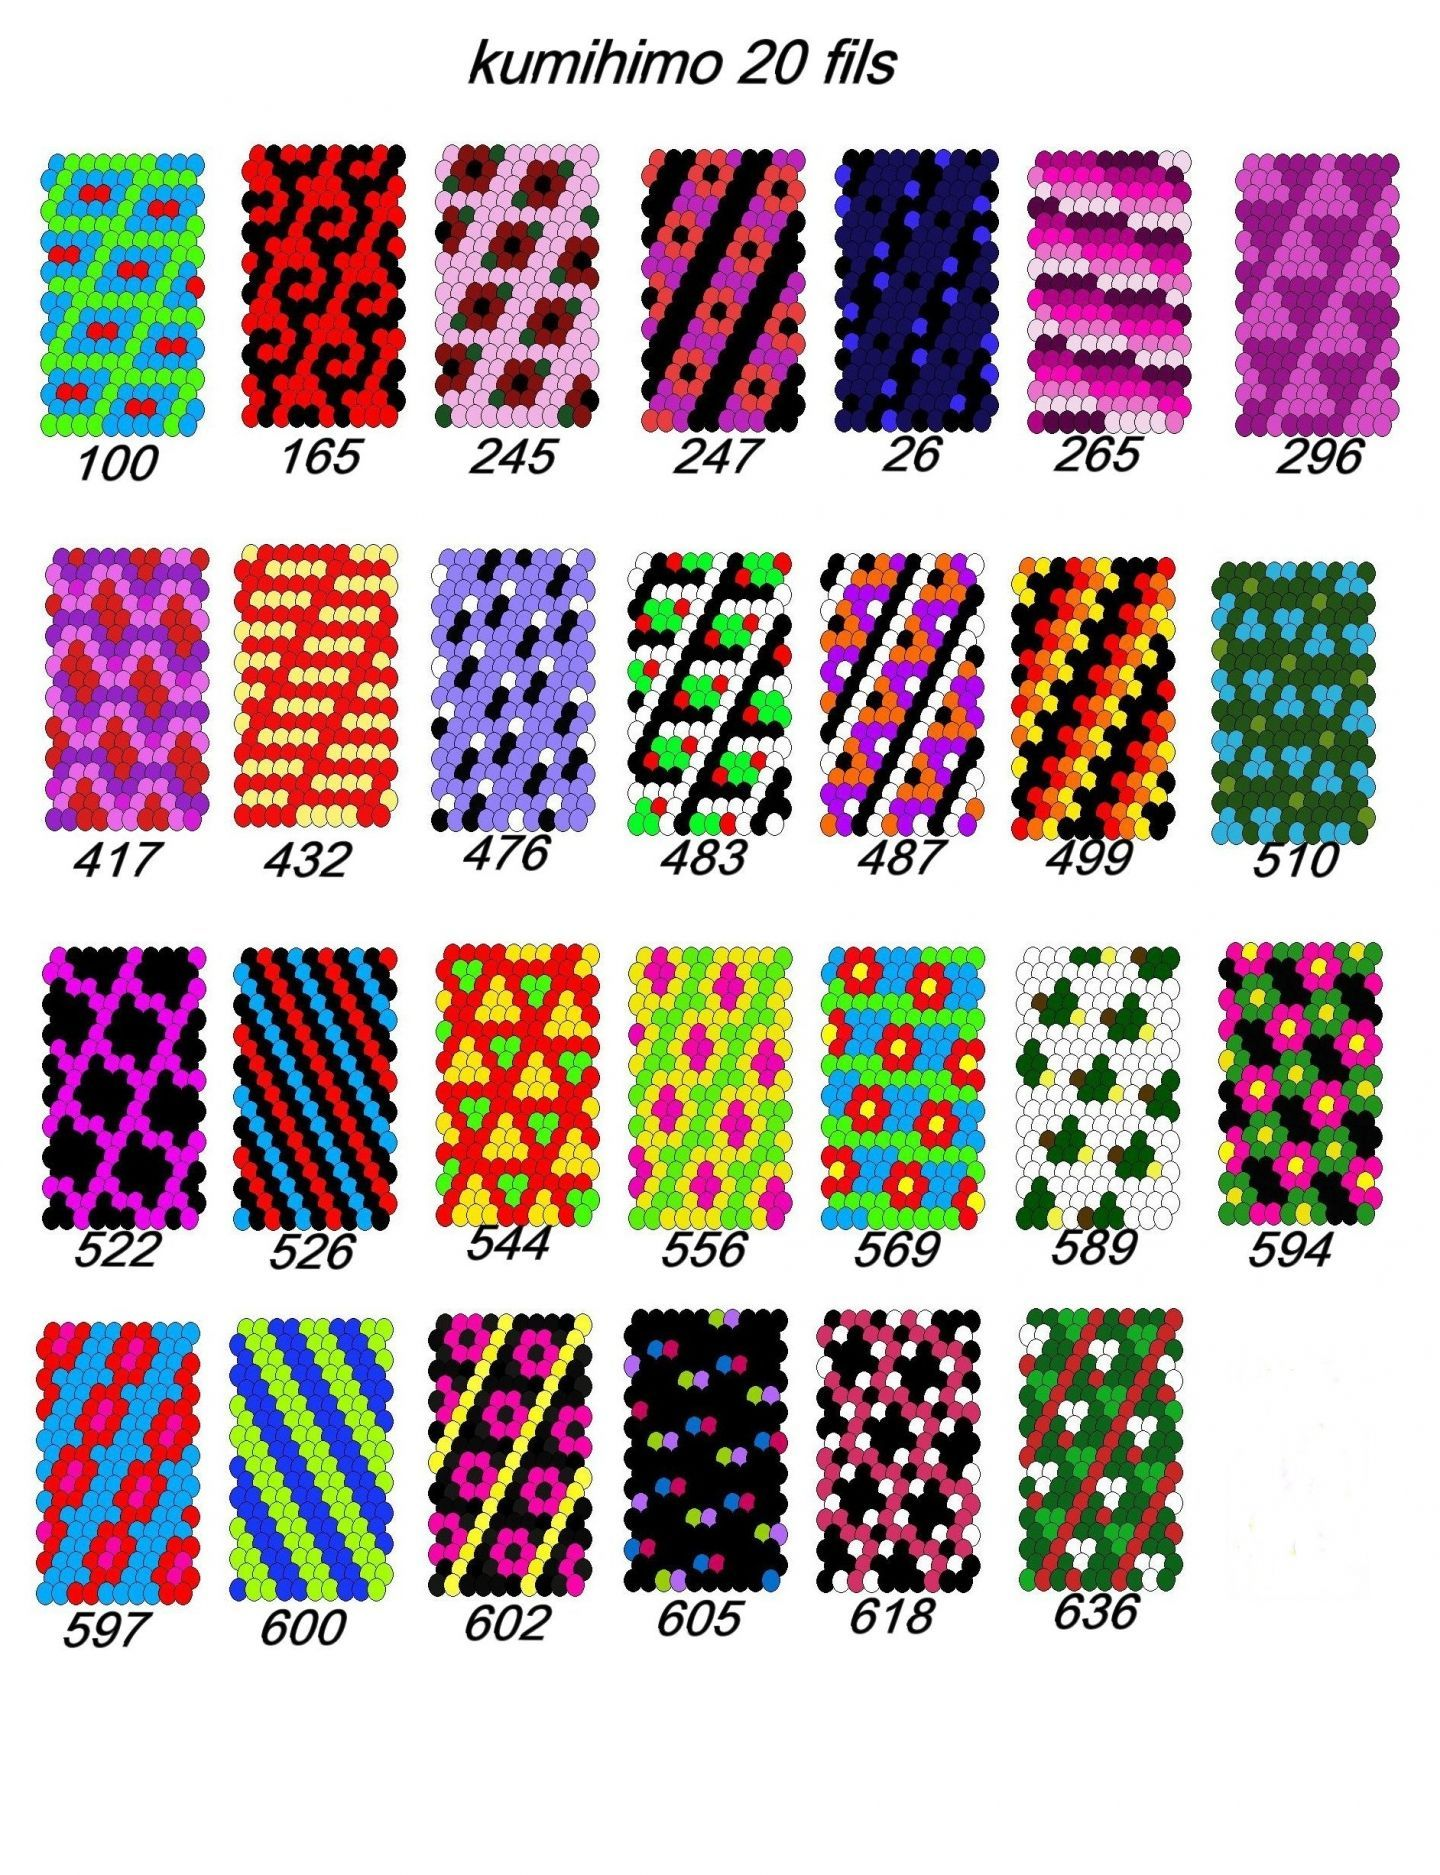 Image Result For Kumihimo Patterns With Beads Generator Kumihimo